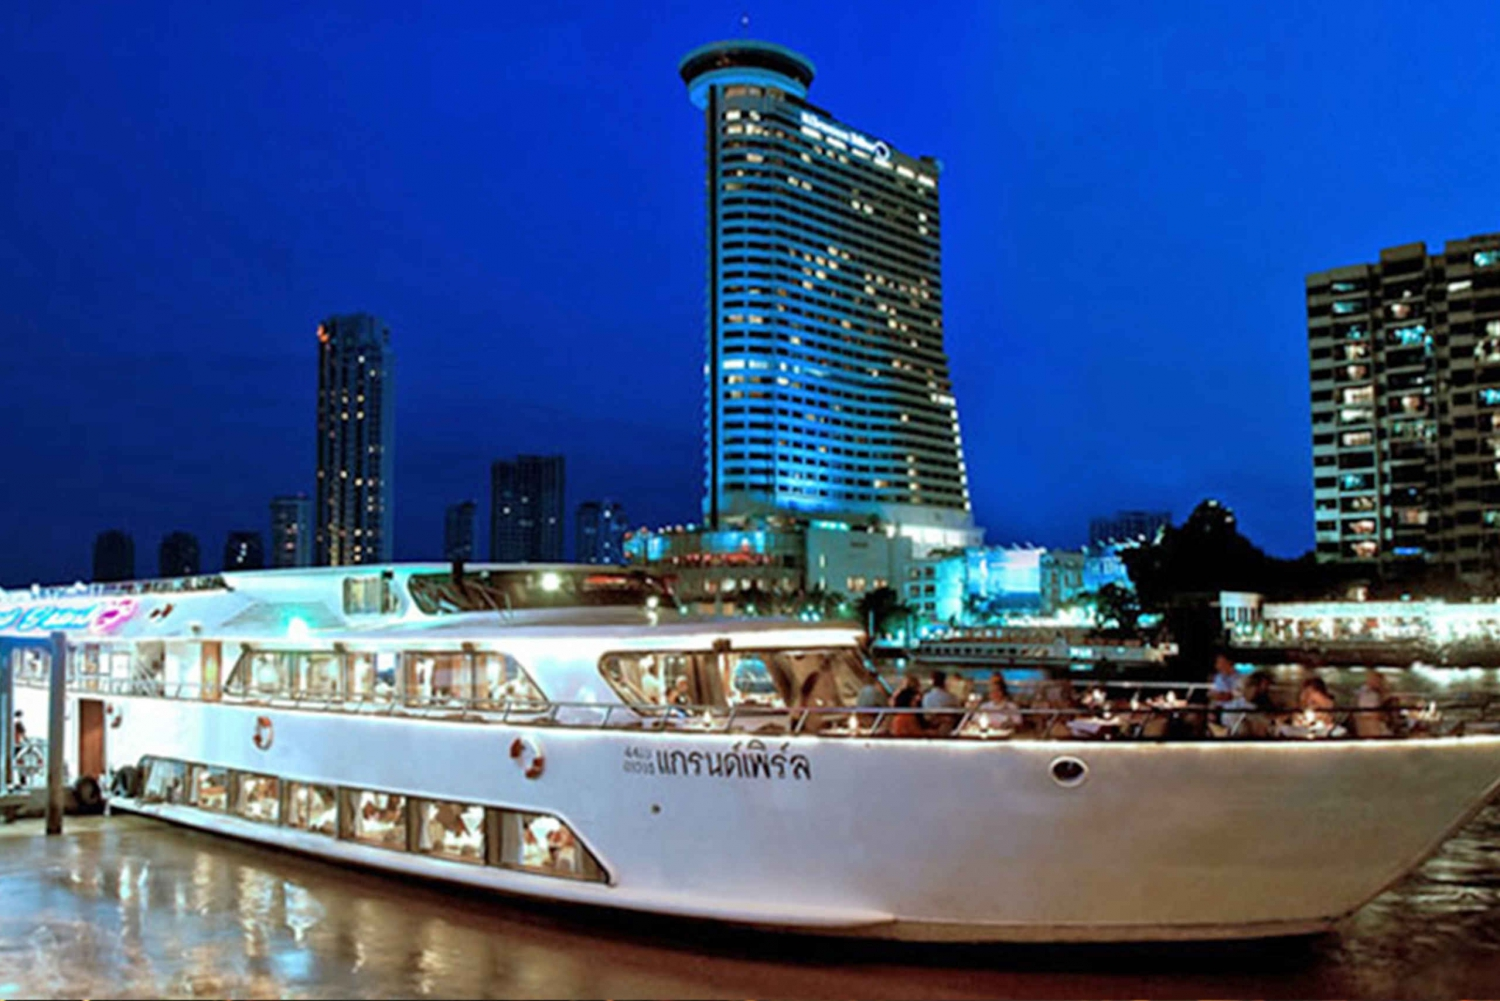 2-Hour Grand Pearl Dinner Cruise on the Chao Phraya River